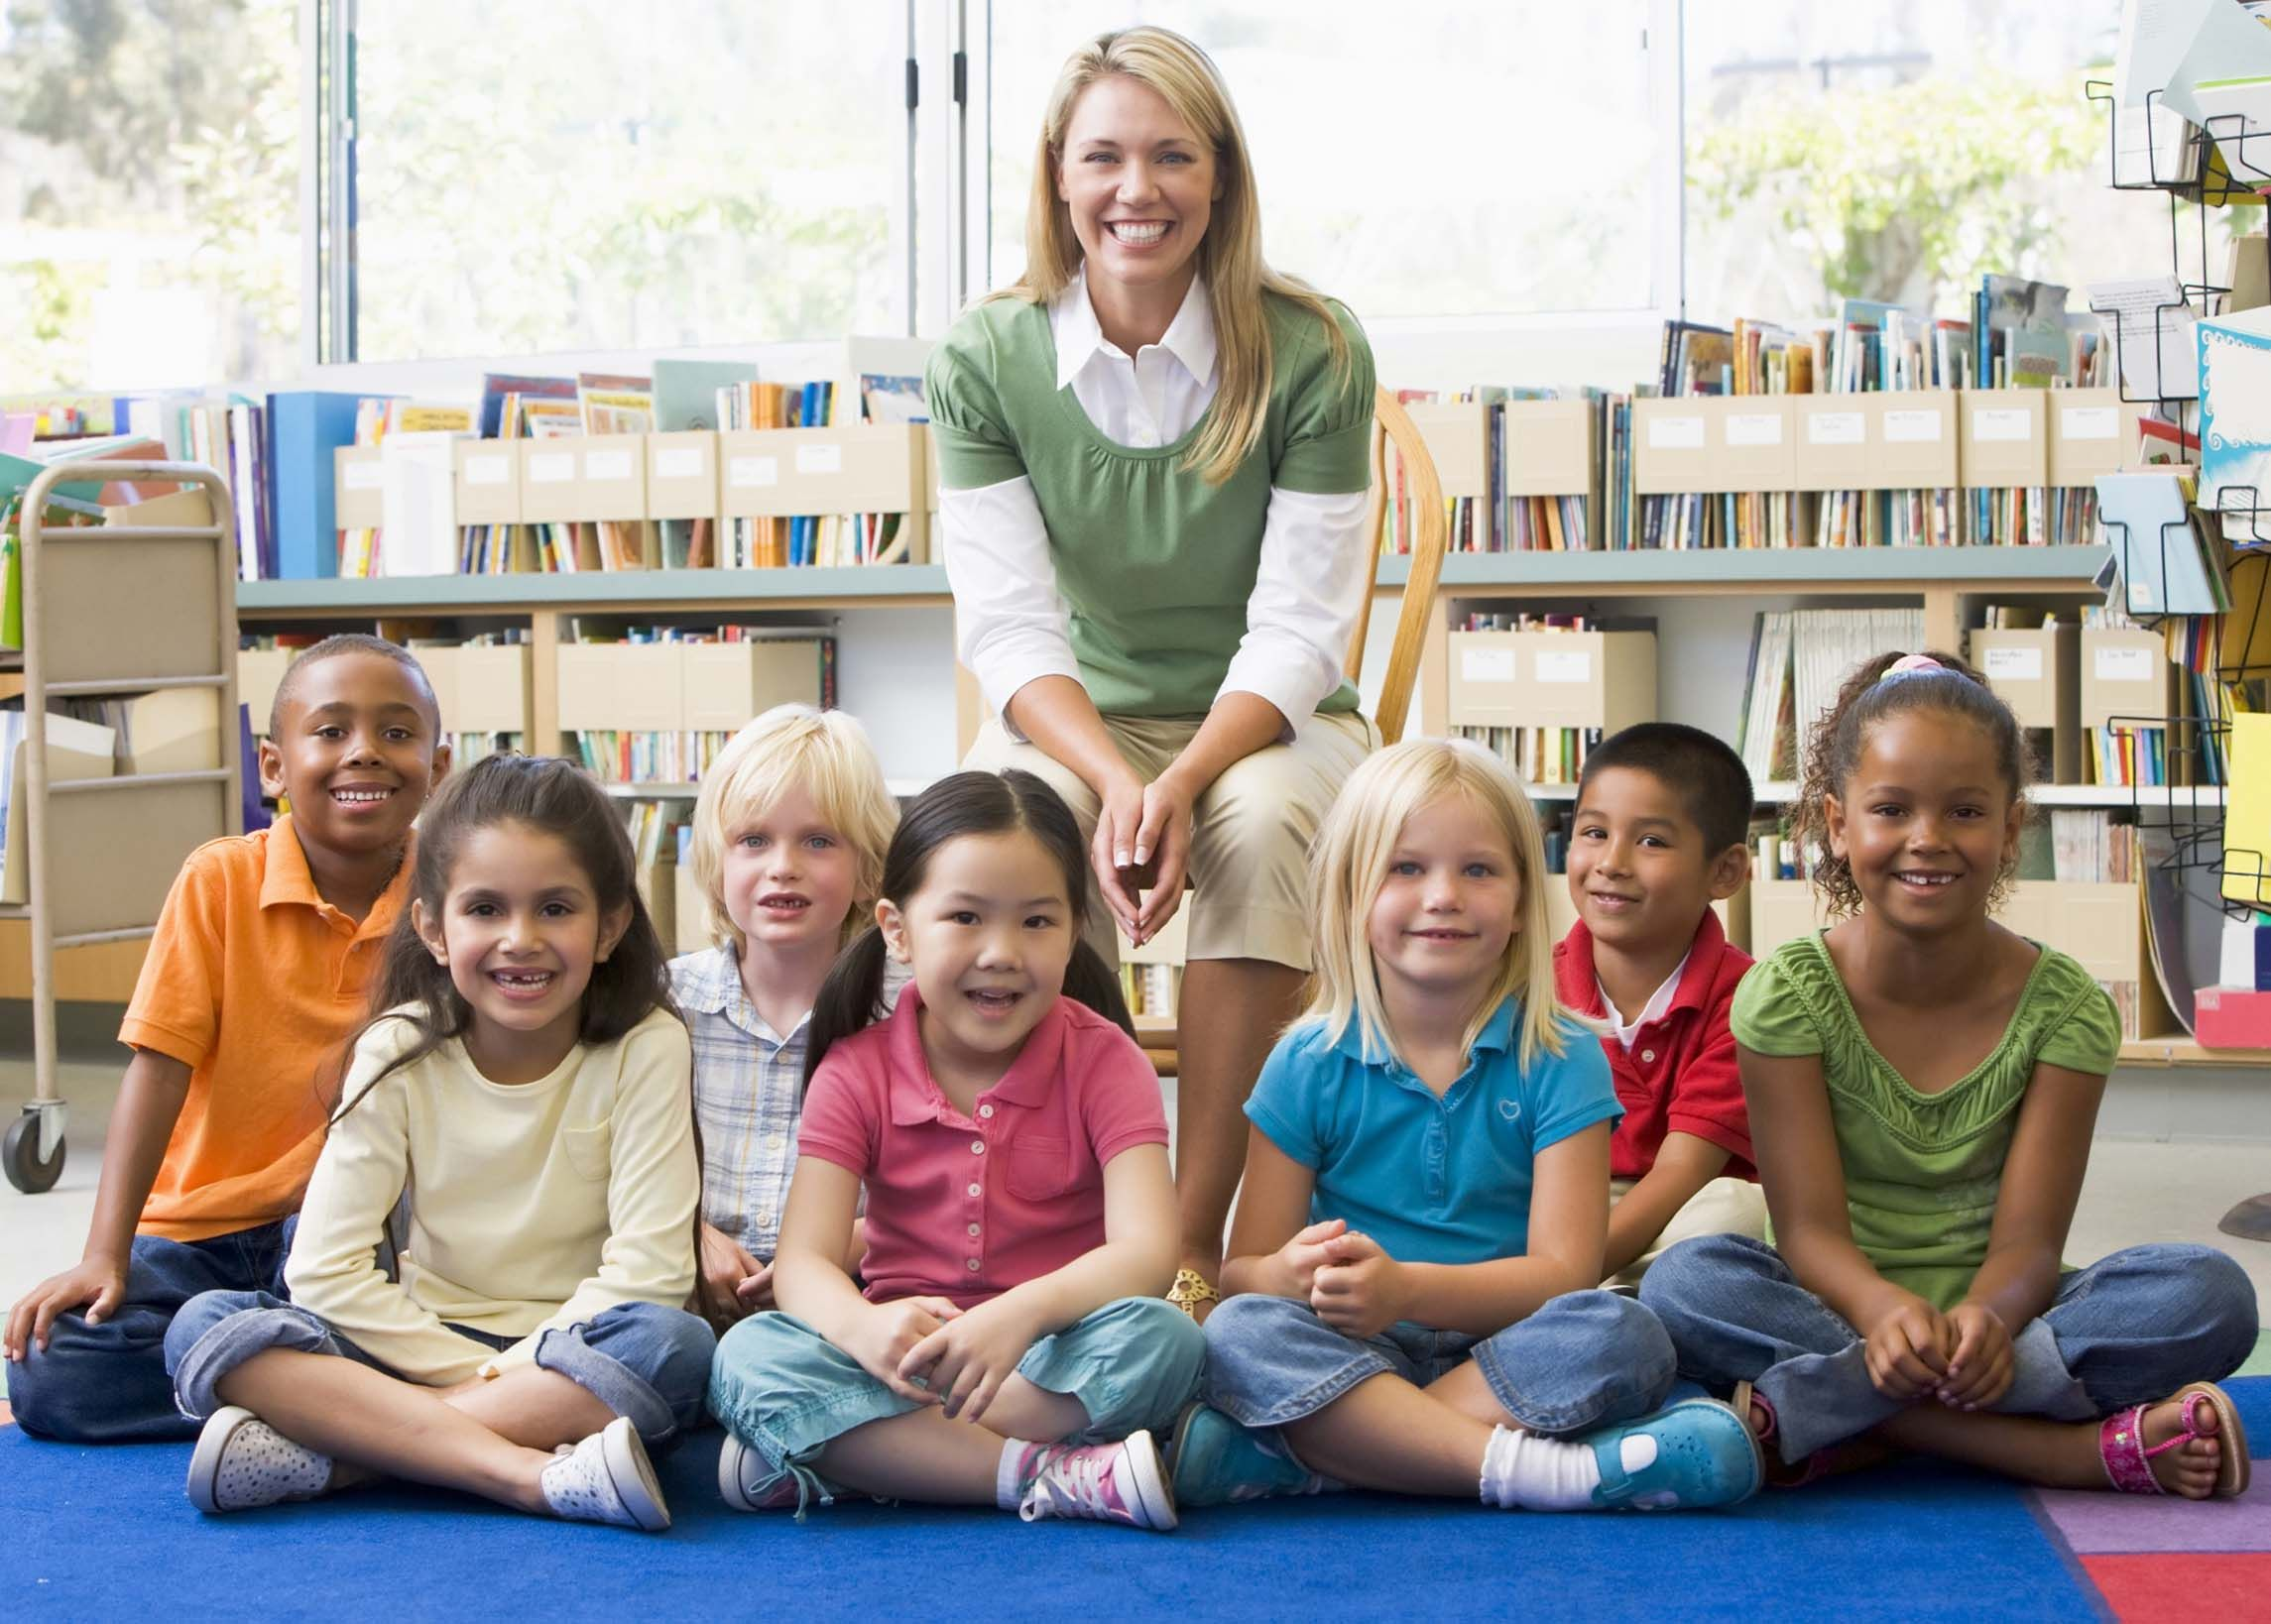 A Blonde Teacher Sits Smiling Behind Her Class Of Kindergarteners